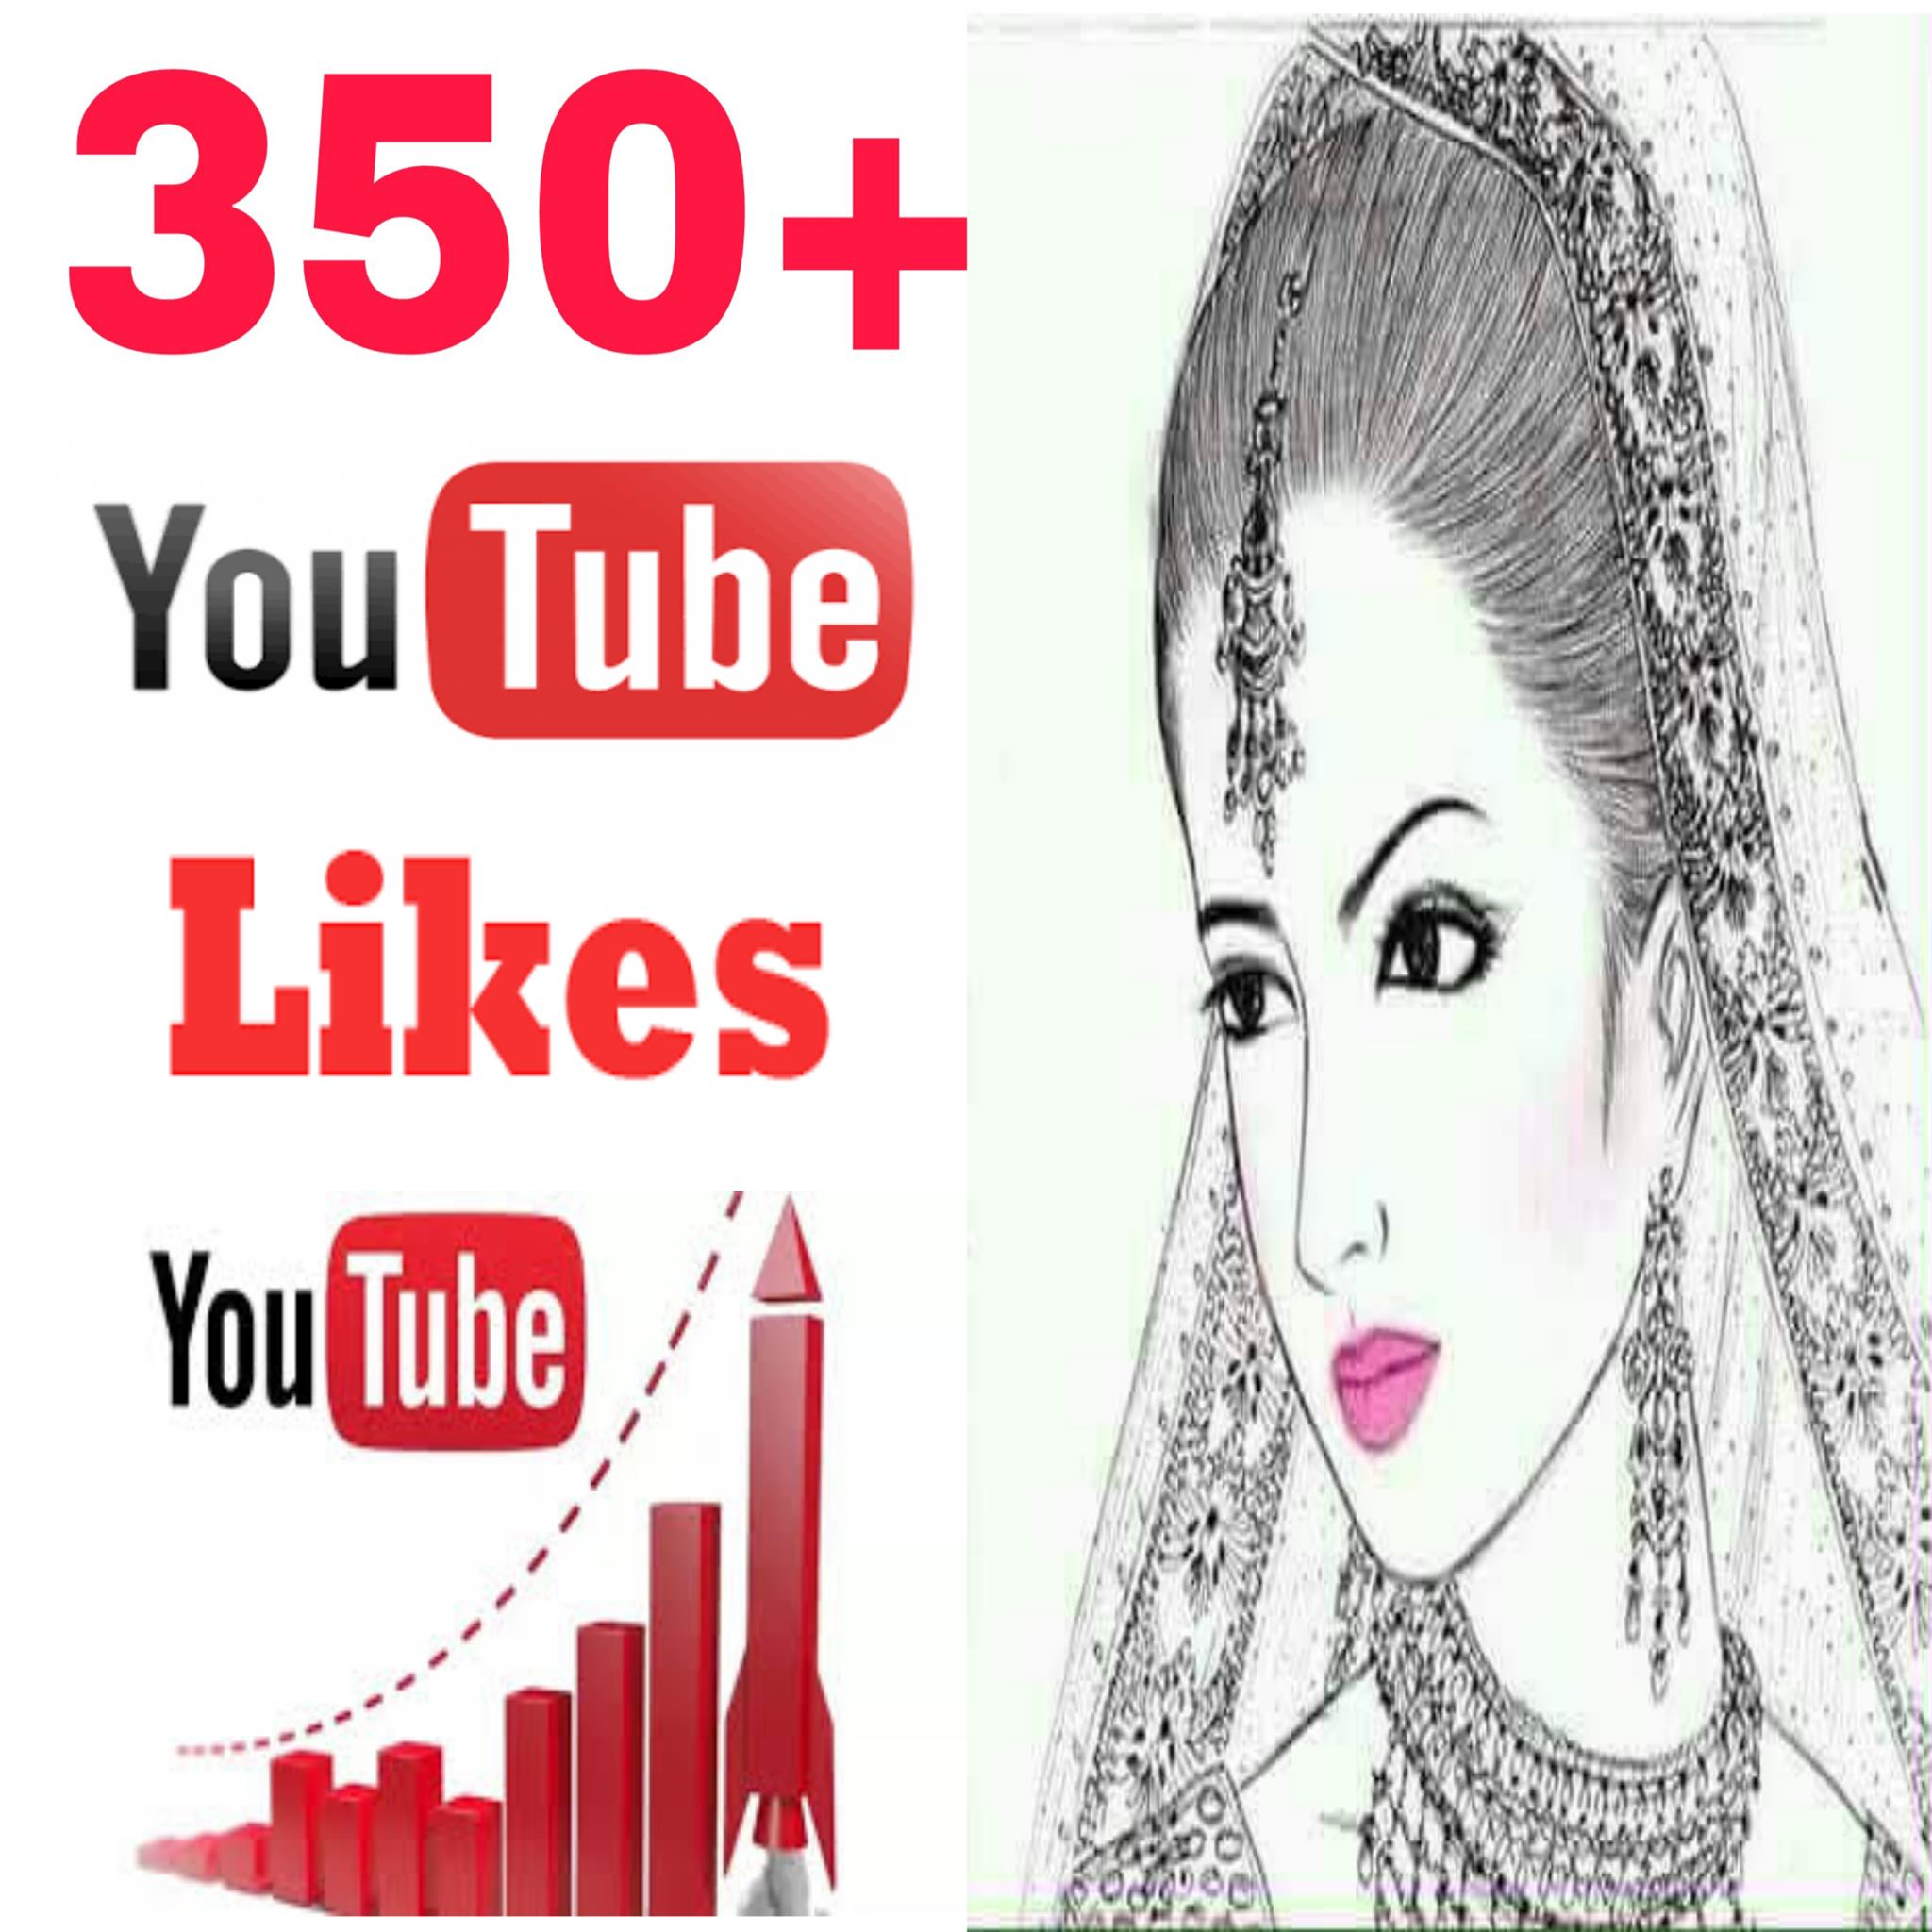 INSTANTLY Provide 350+ high quality video likes very fast in 1-1 hours